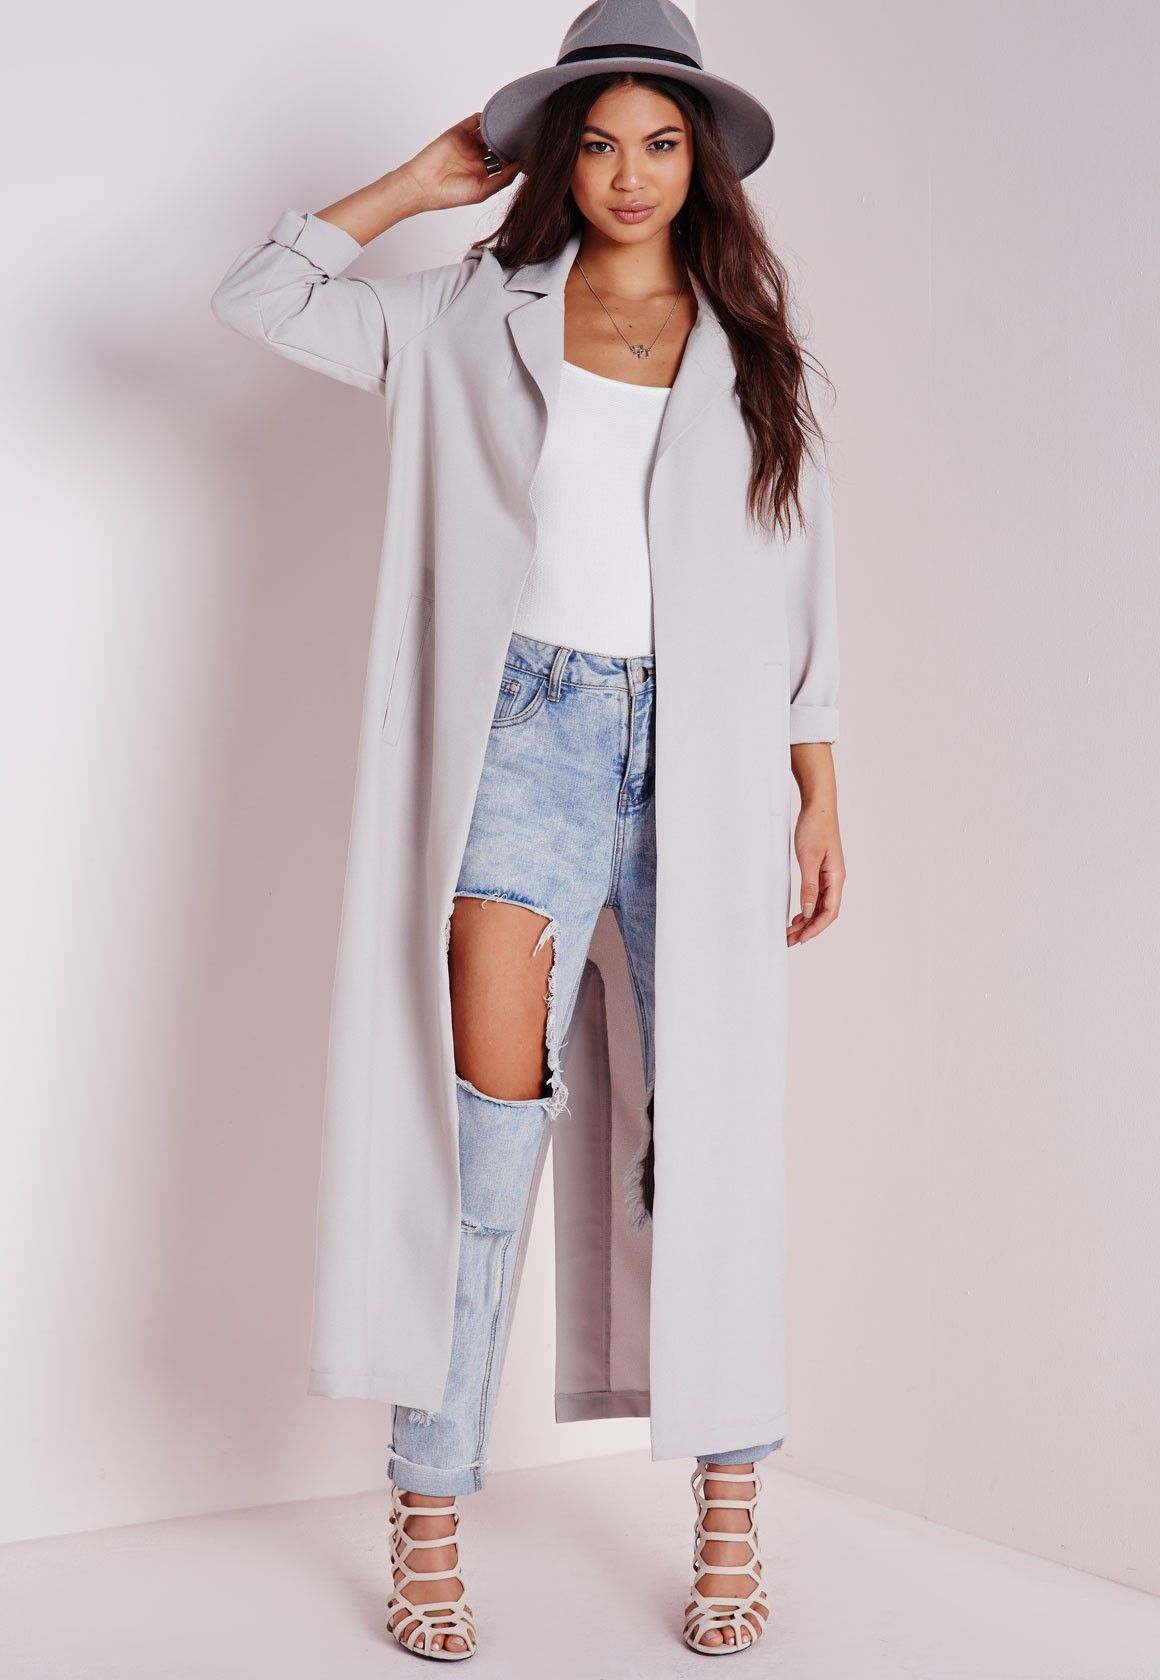 df0a5765f9 Cause a little chaos with this light grey, long sleeve duster jacket in a  luxe maxi length! Perfect day or night!